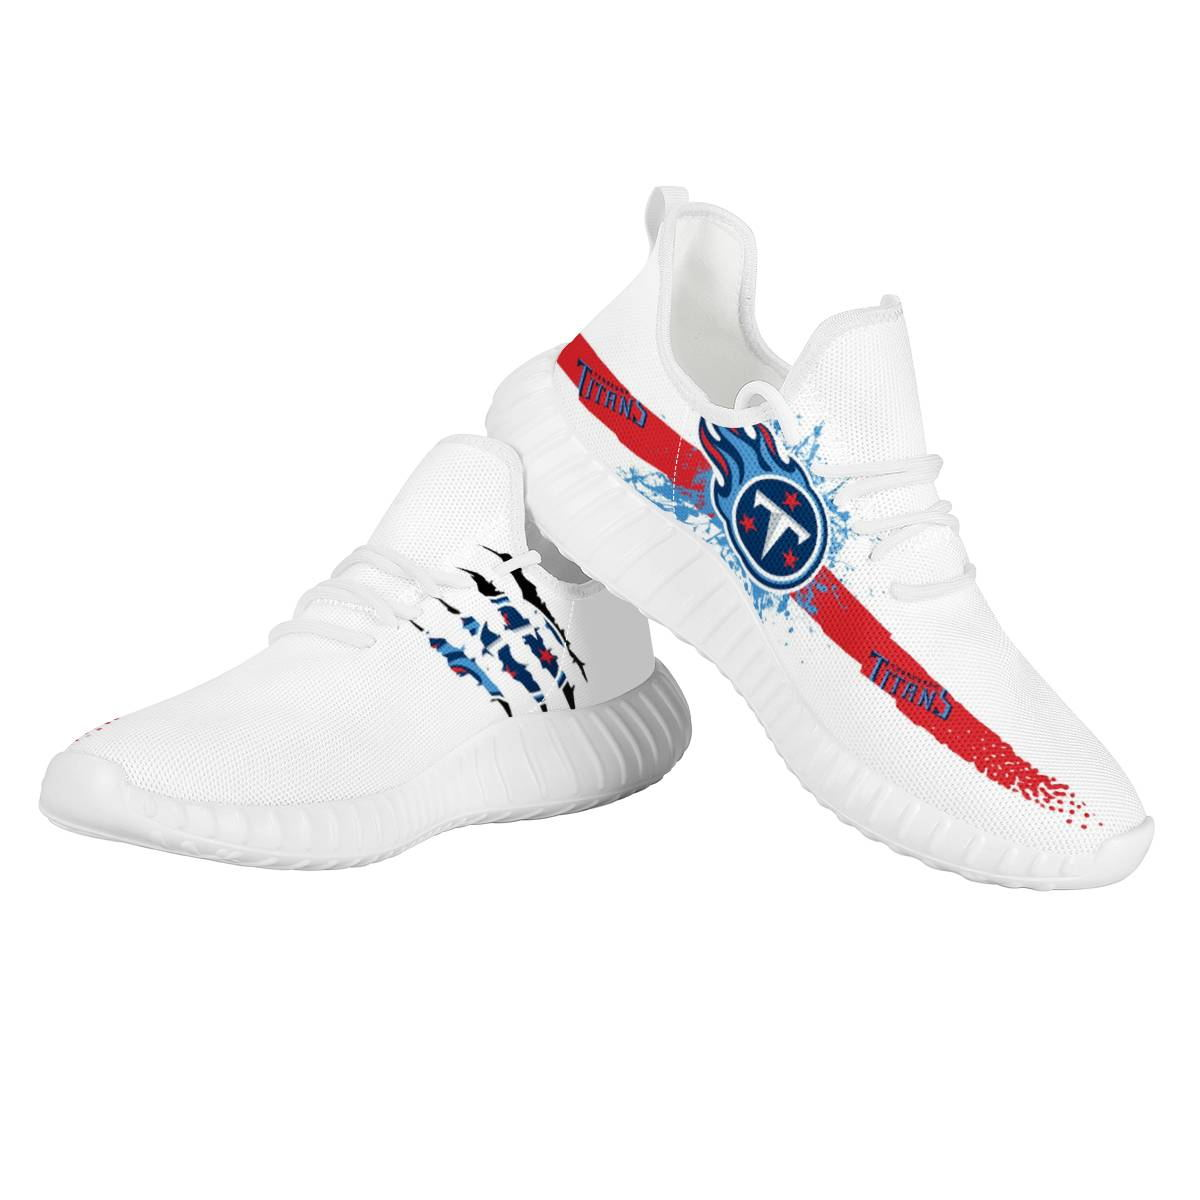 Men's Tennessee Titans Mesh Knit Sneakers/Shoes 005